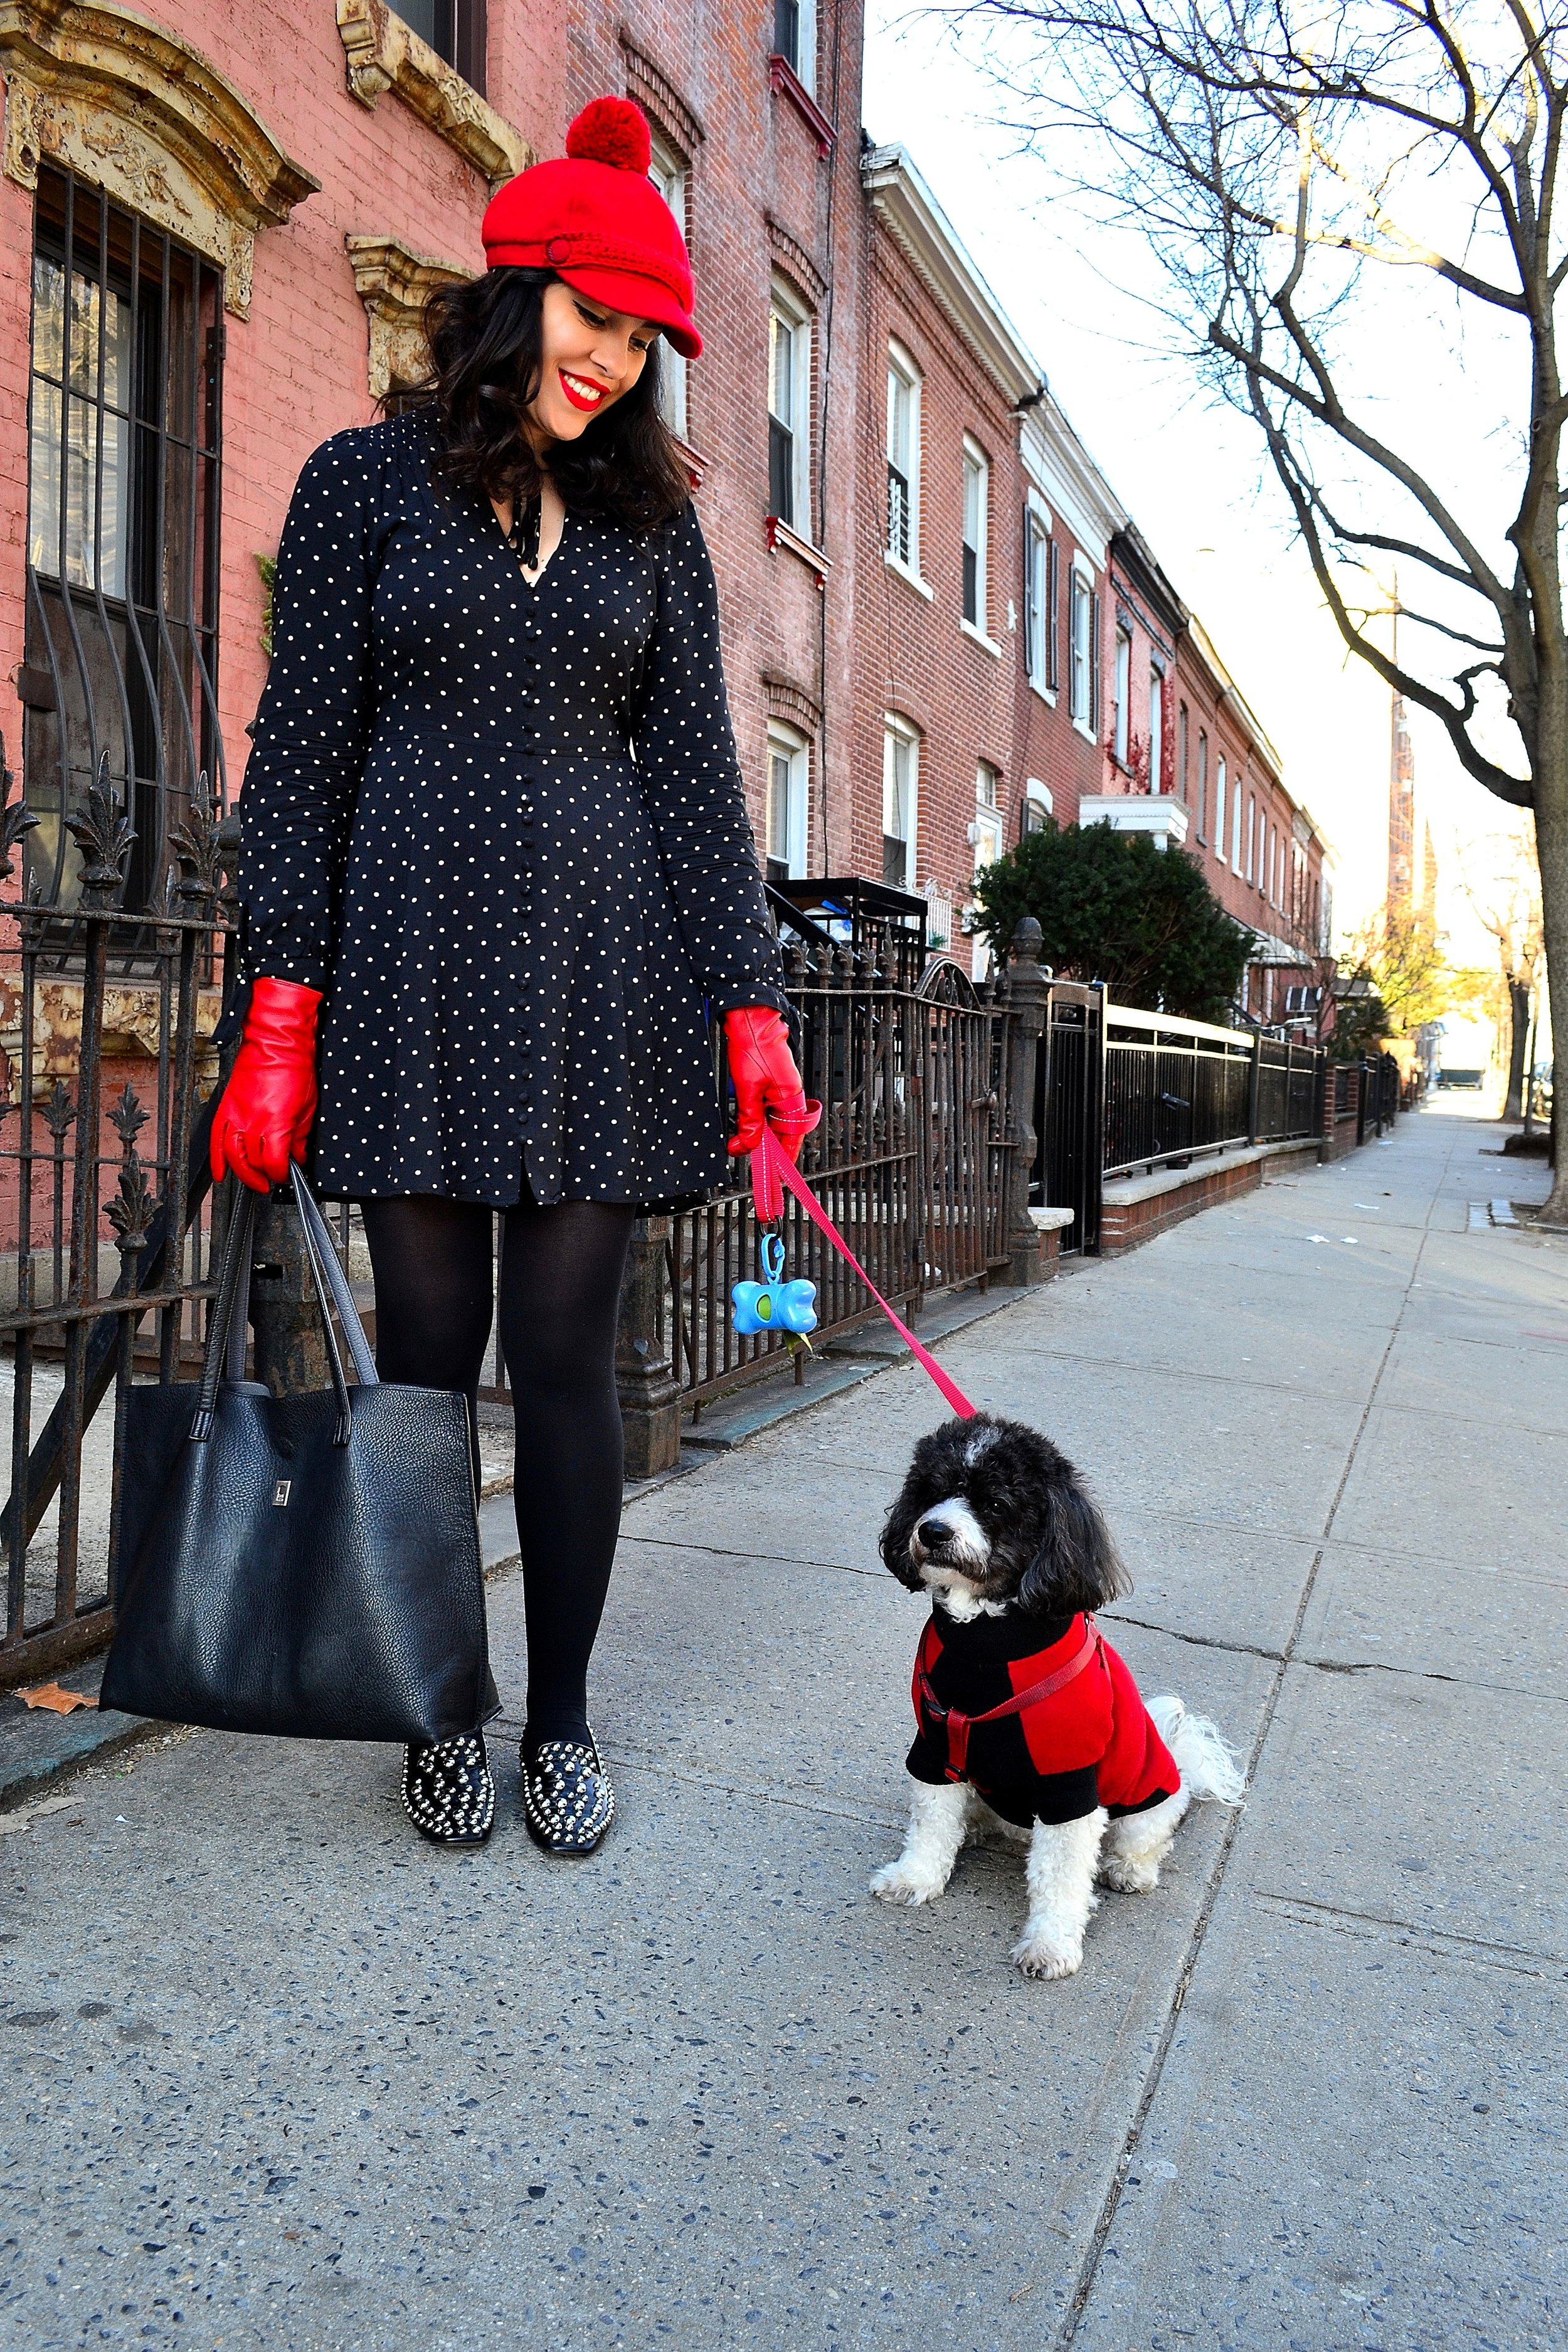 dress express tights asos loafers zara bag brooklyn industries with dog 3.JPG